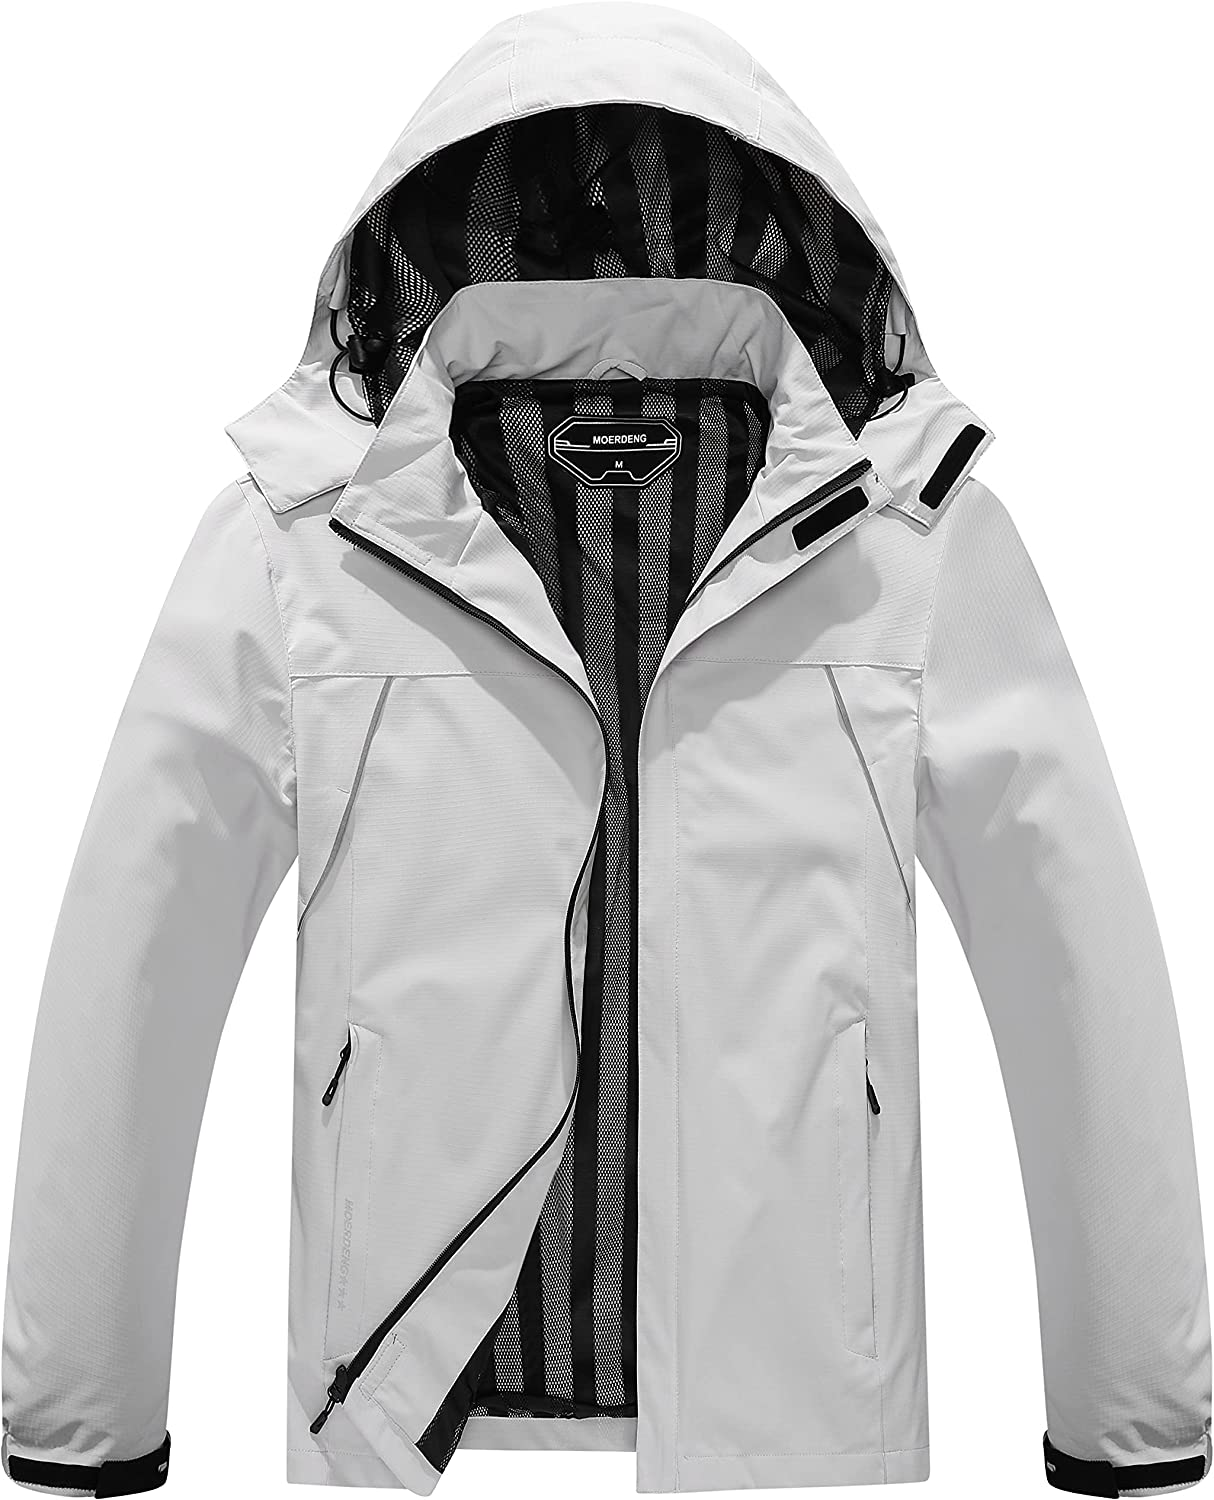 Men's Lightweight Rain Jacket Max 61% OFF Waterproof Breathable Out Coat Very popular! and